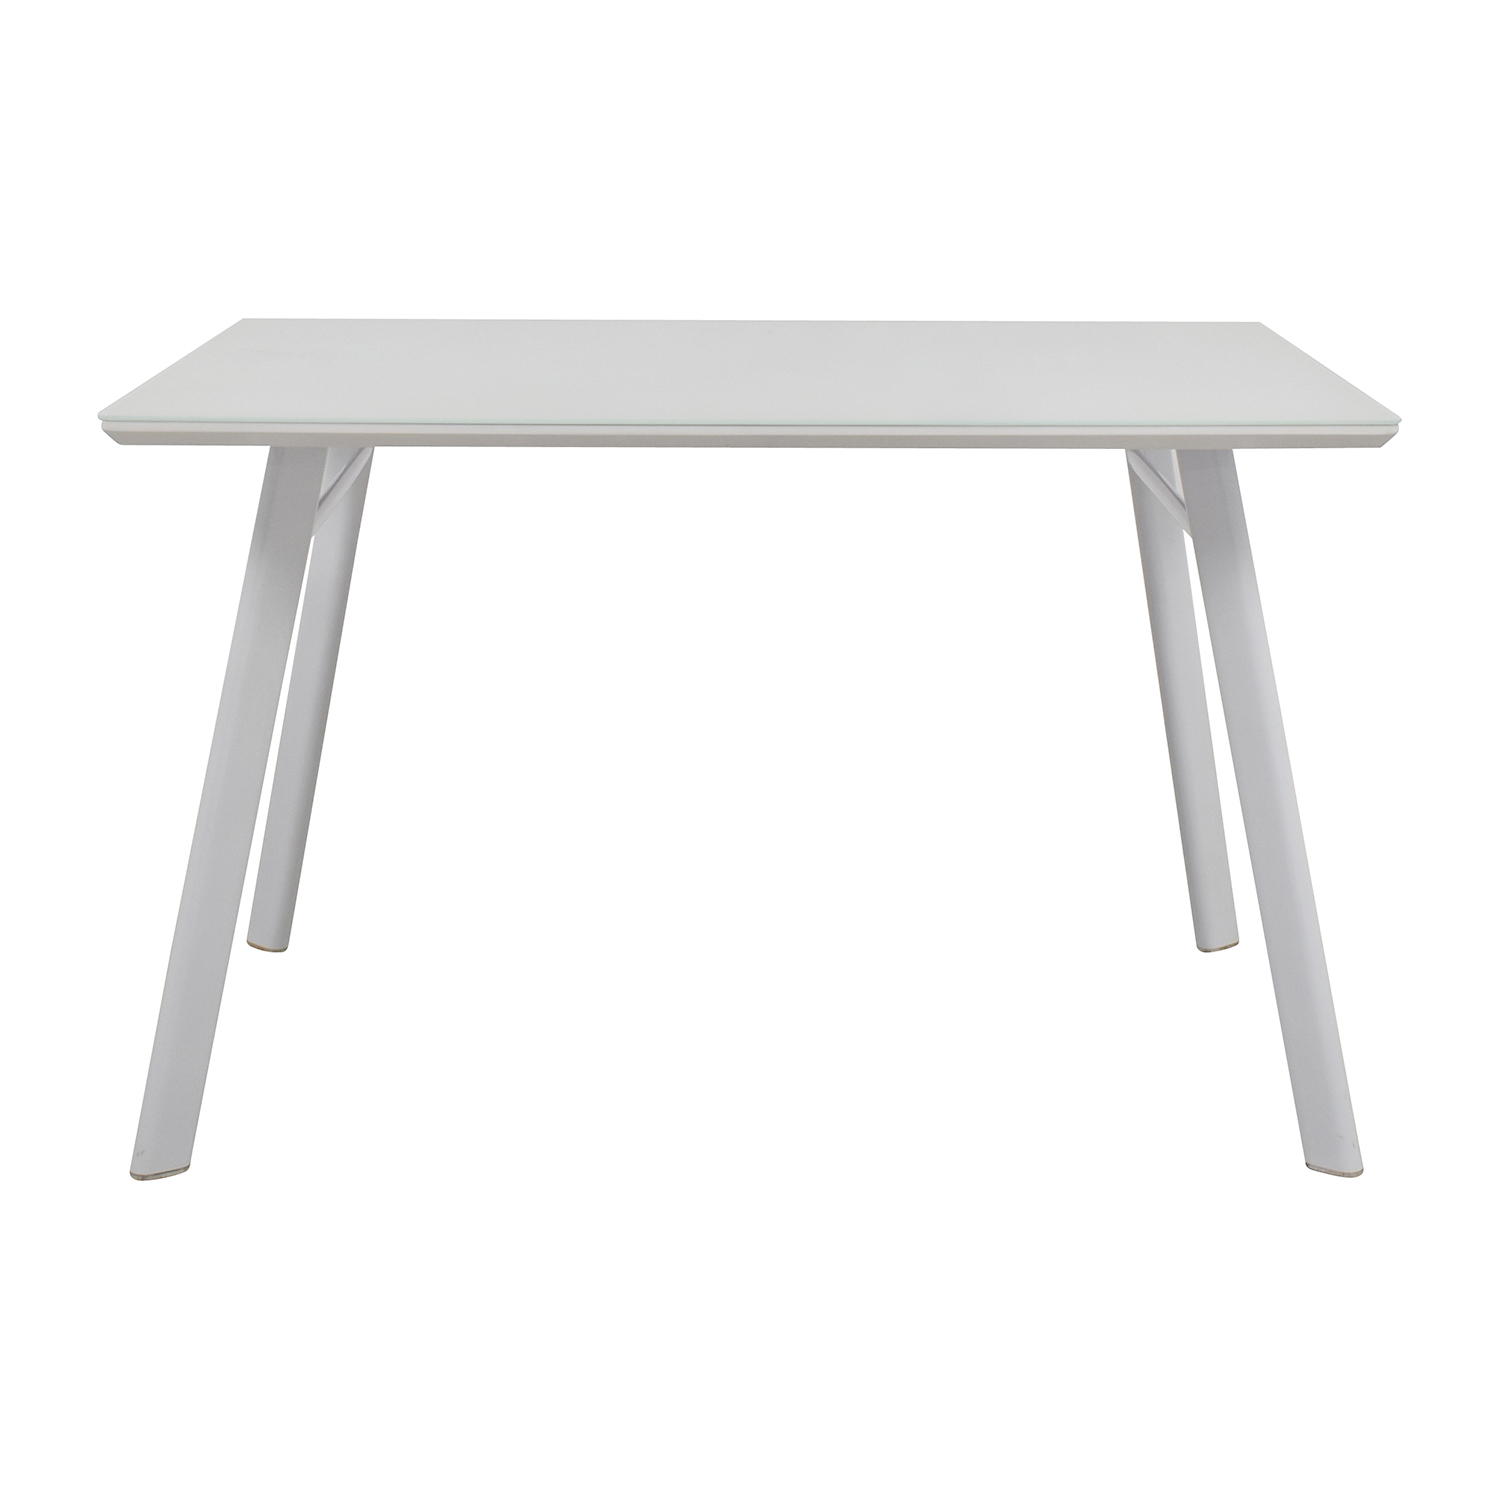 J&M J&M Furniture Height Dining Table coupon